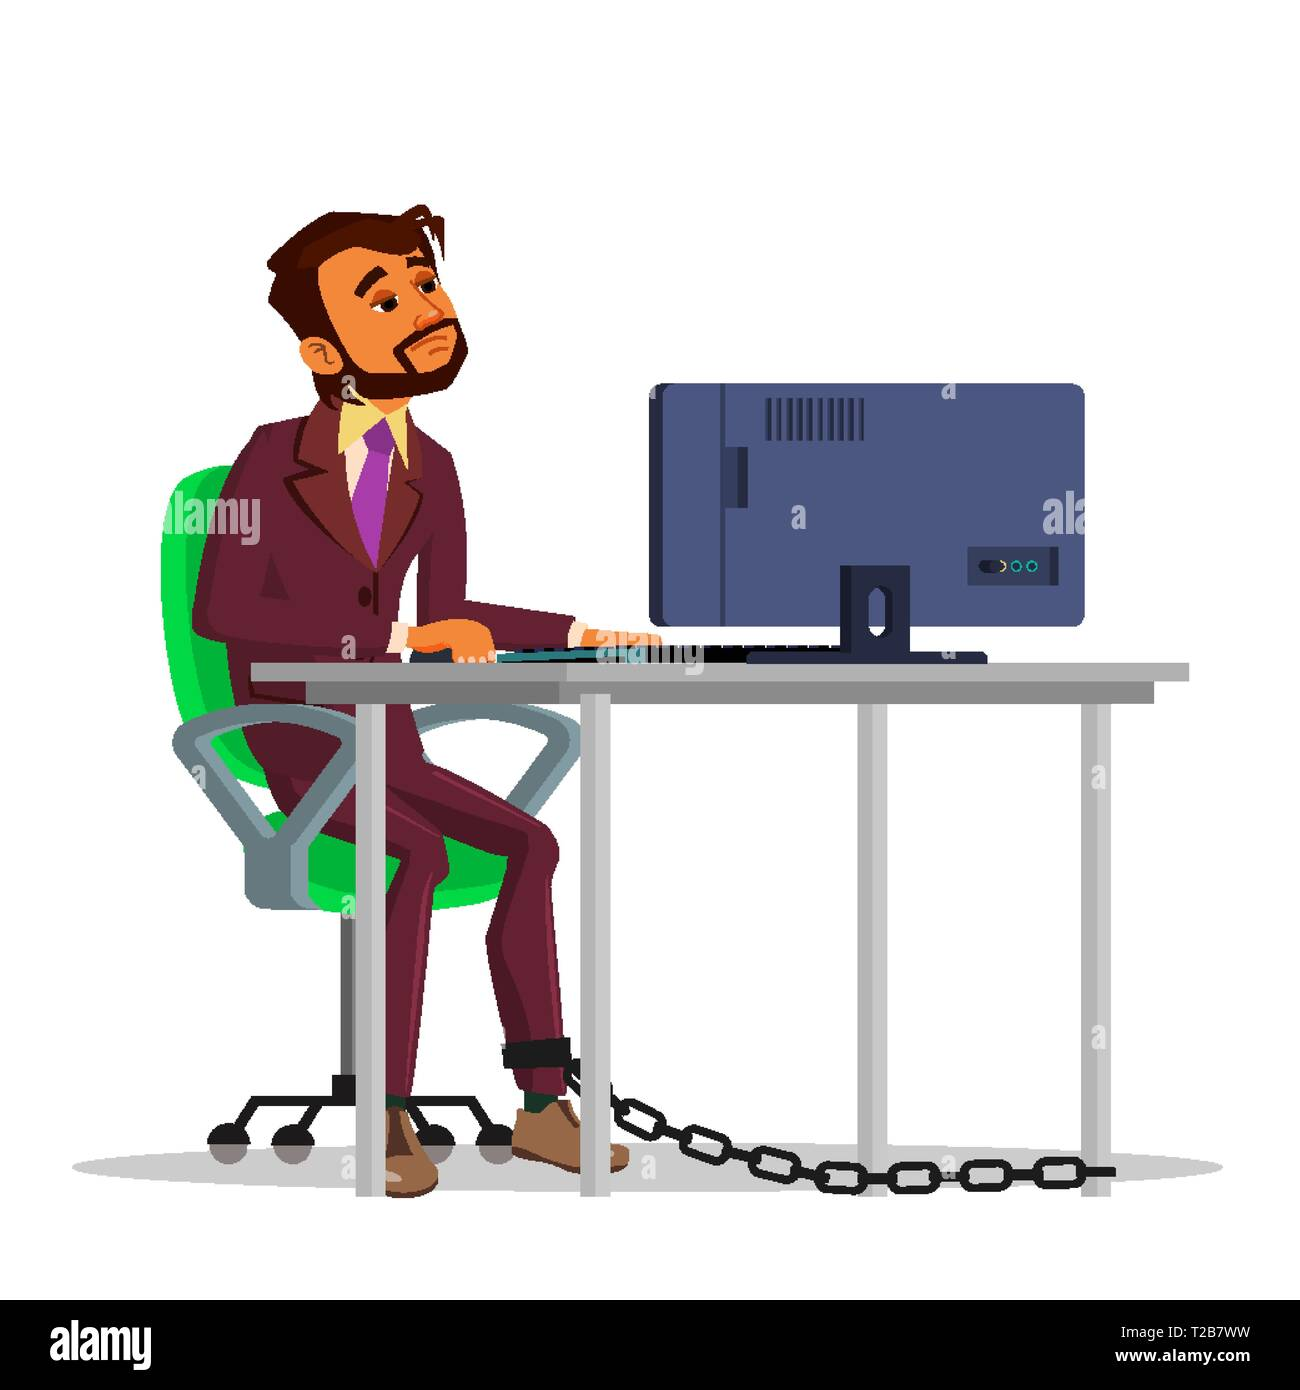 Indian Chained Businessman Working On Laptop At Table Vector Flat Cartoon Illustration - Stock Vector